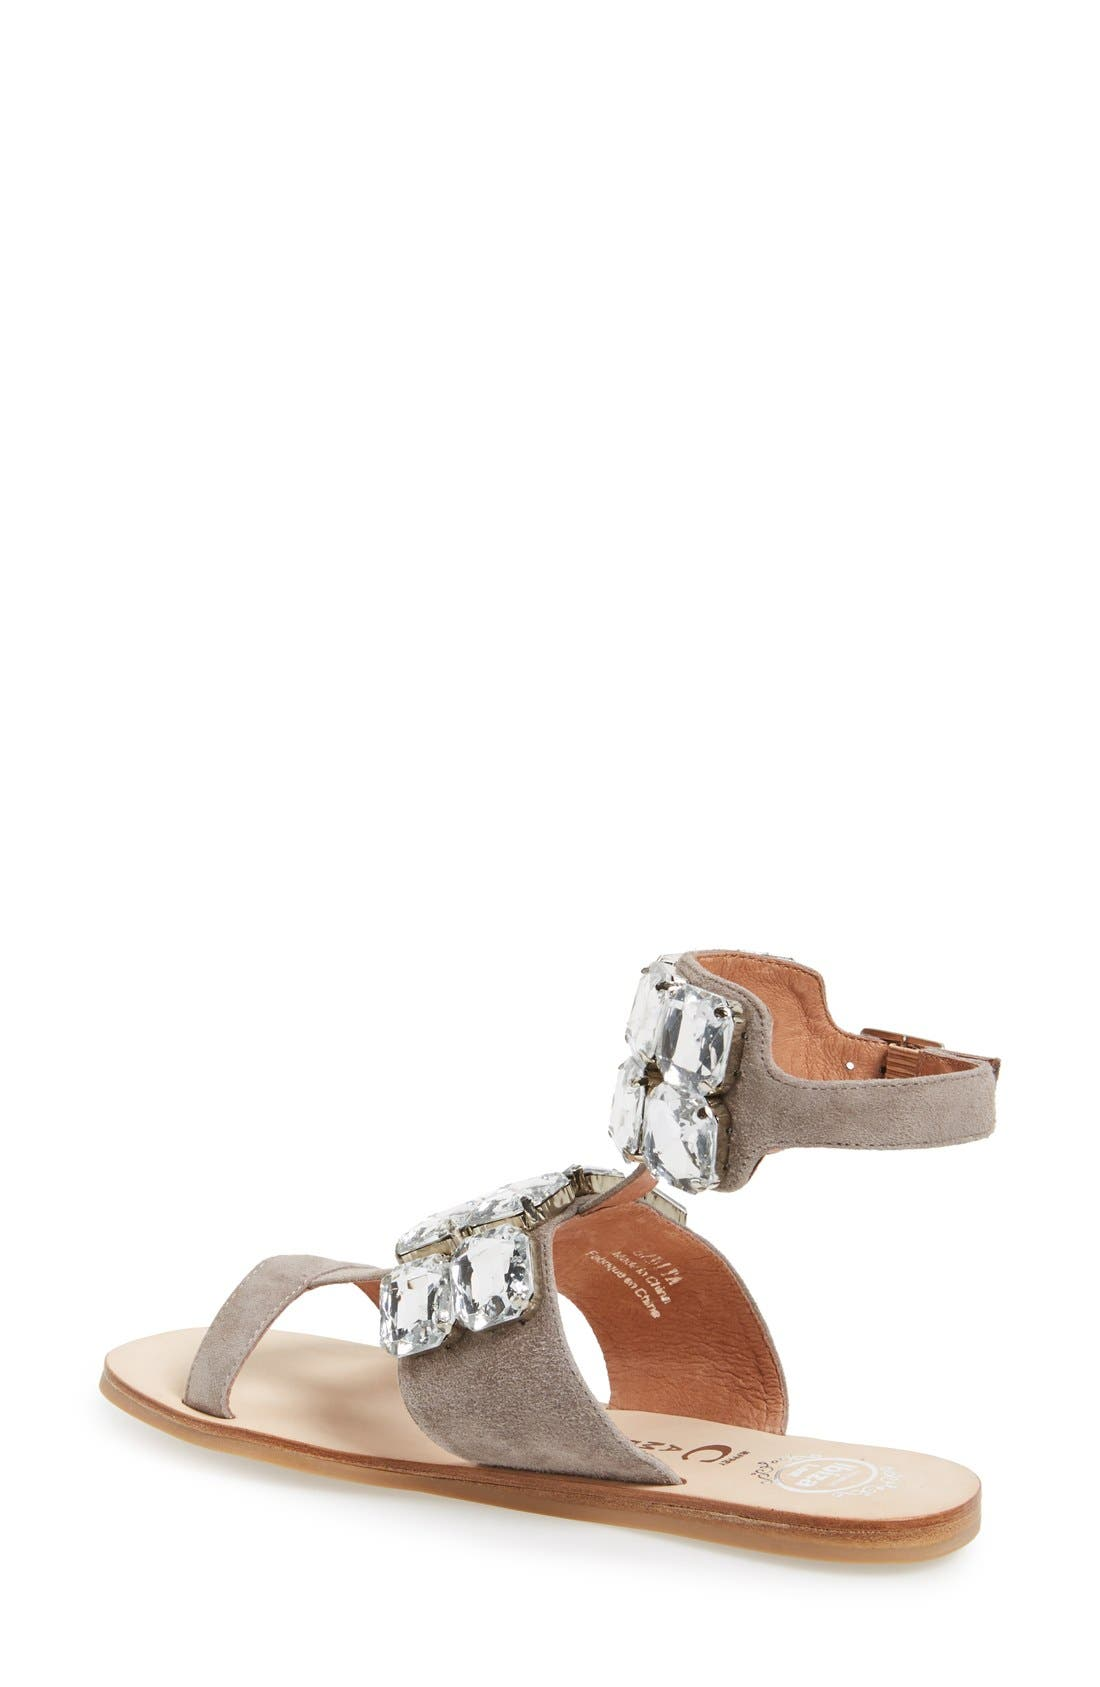 JEFFREY CAMPBELL, 'Sabita' Jeweled Suede Ankle Strap Sandal, Alternate thumbnail 4, color, 060